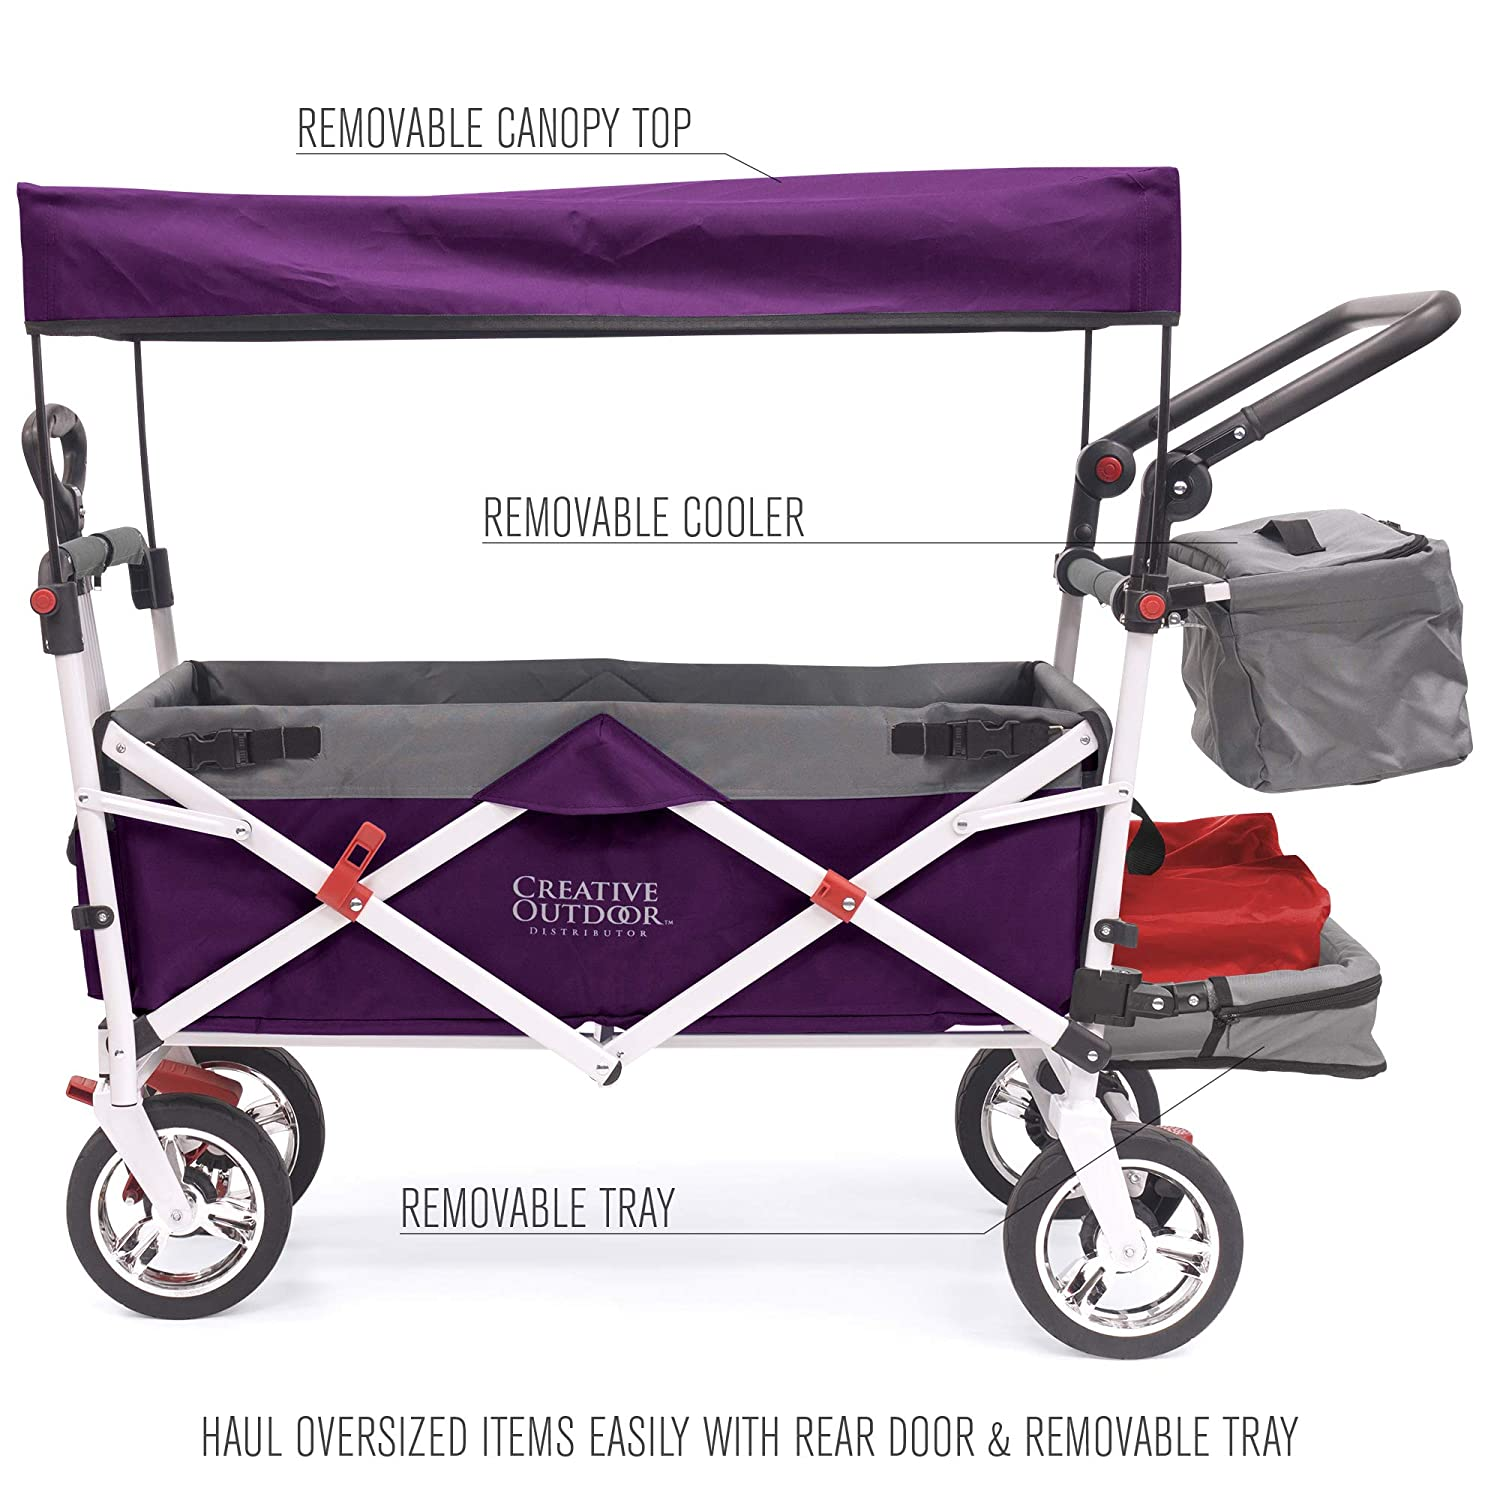 Creative Outdoor Push Pull Collapsible Folding Wagon Stroller Cart for Kids | Silver Series | Beach Park Garden & Tailgate | Purple